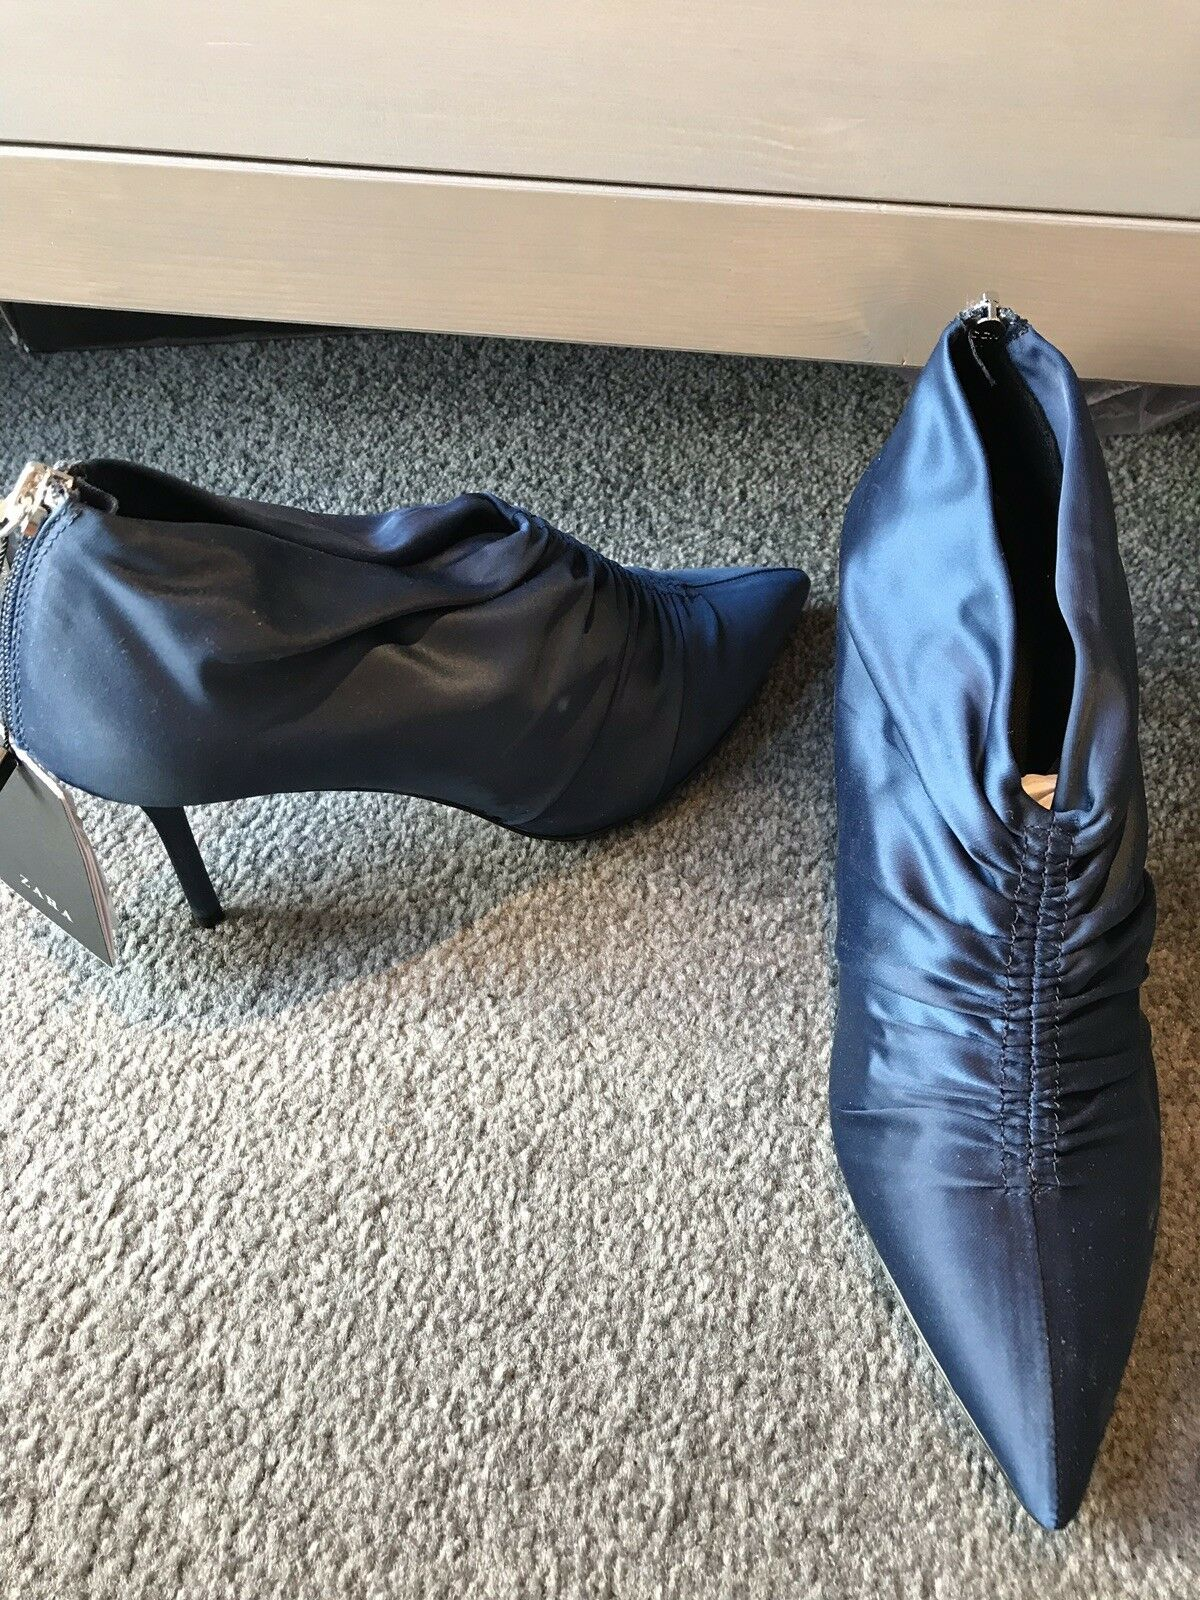 Zara bluee Silky Pointed Booties Ankle Boots Uk 4